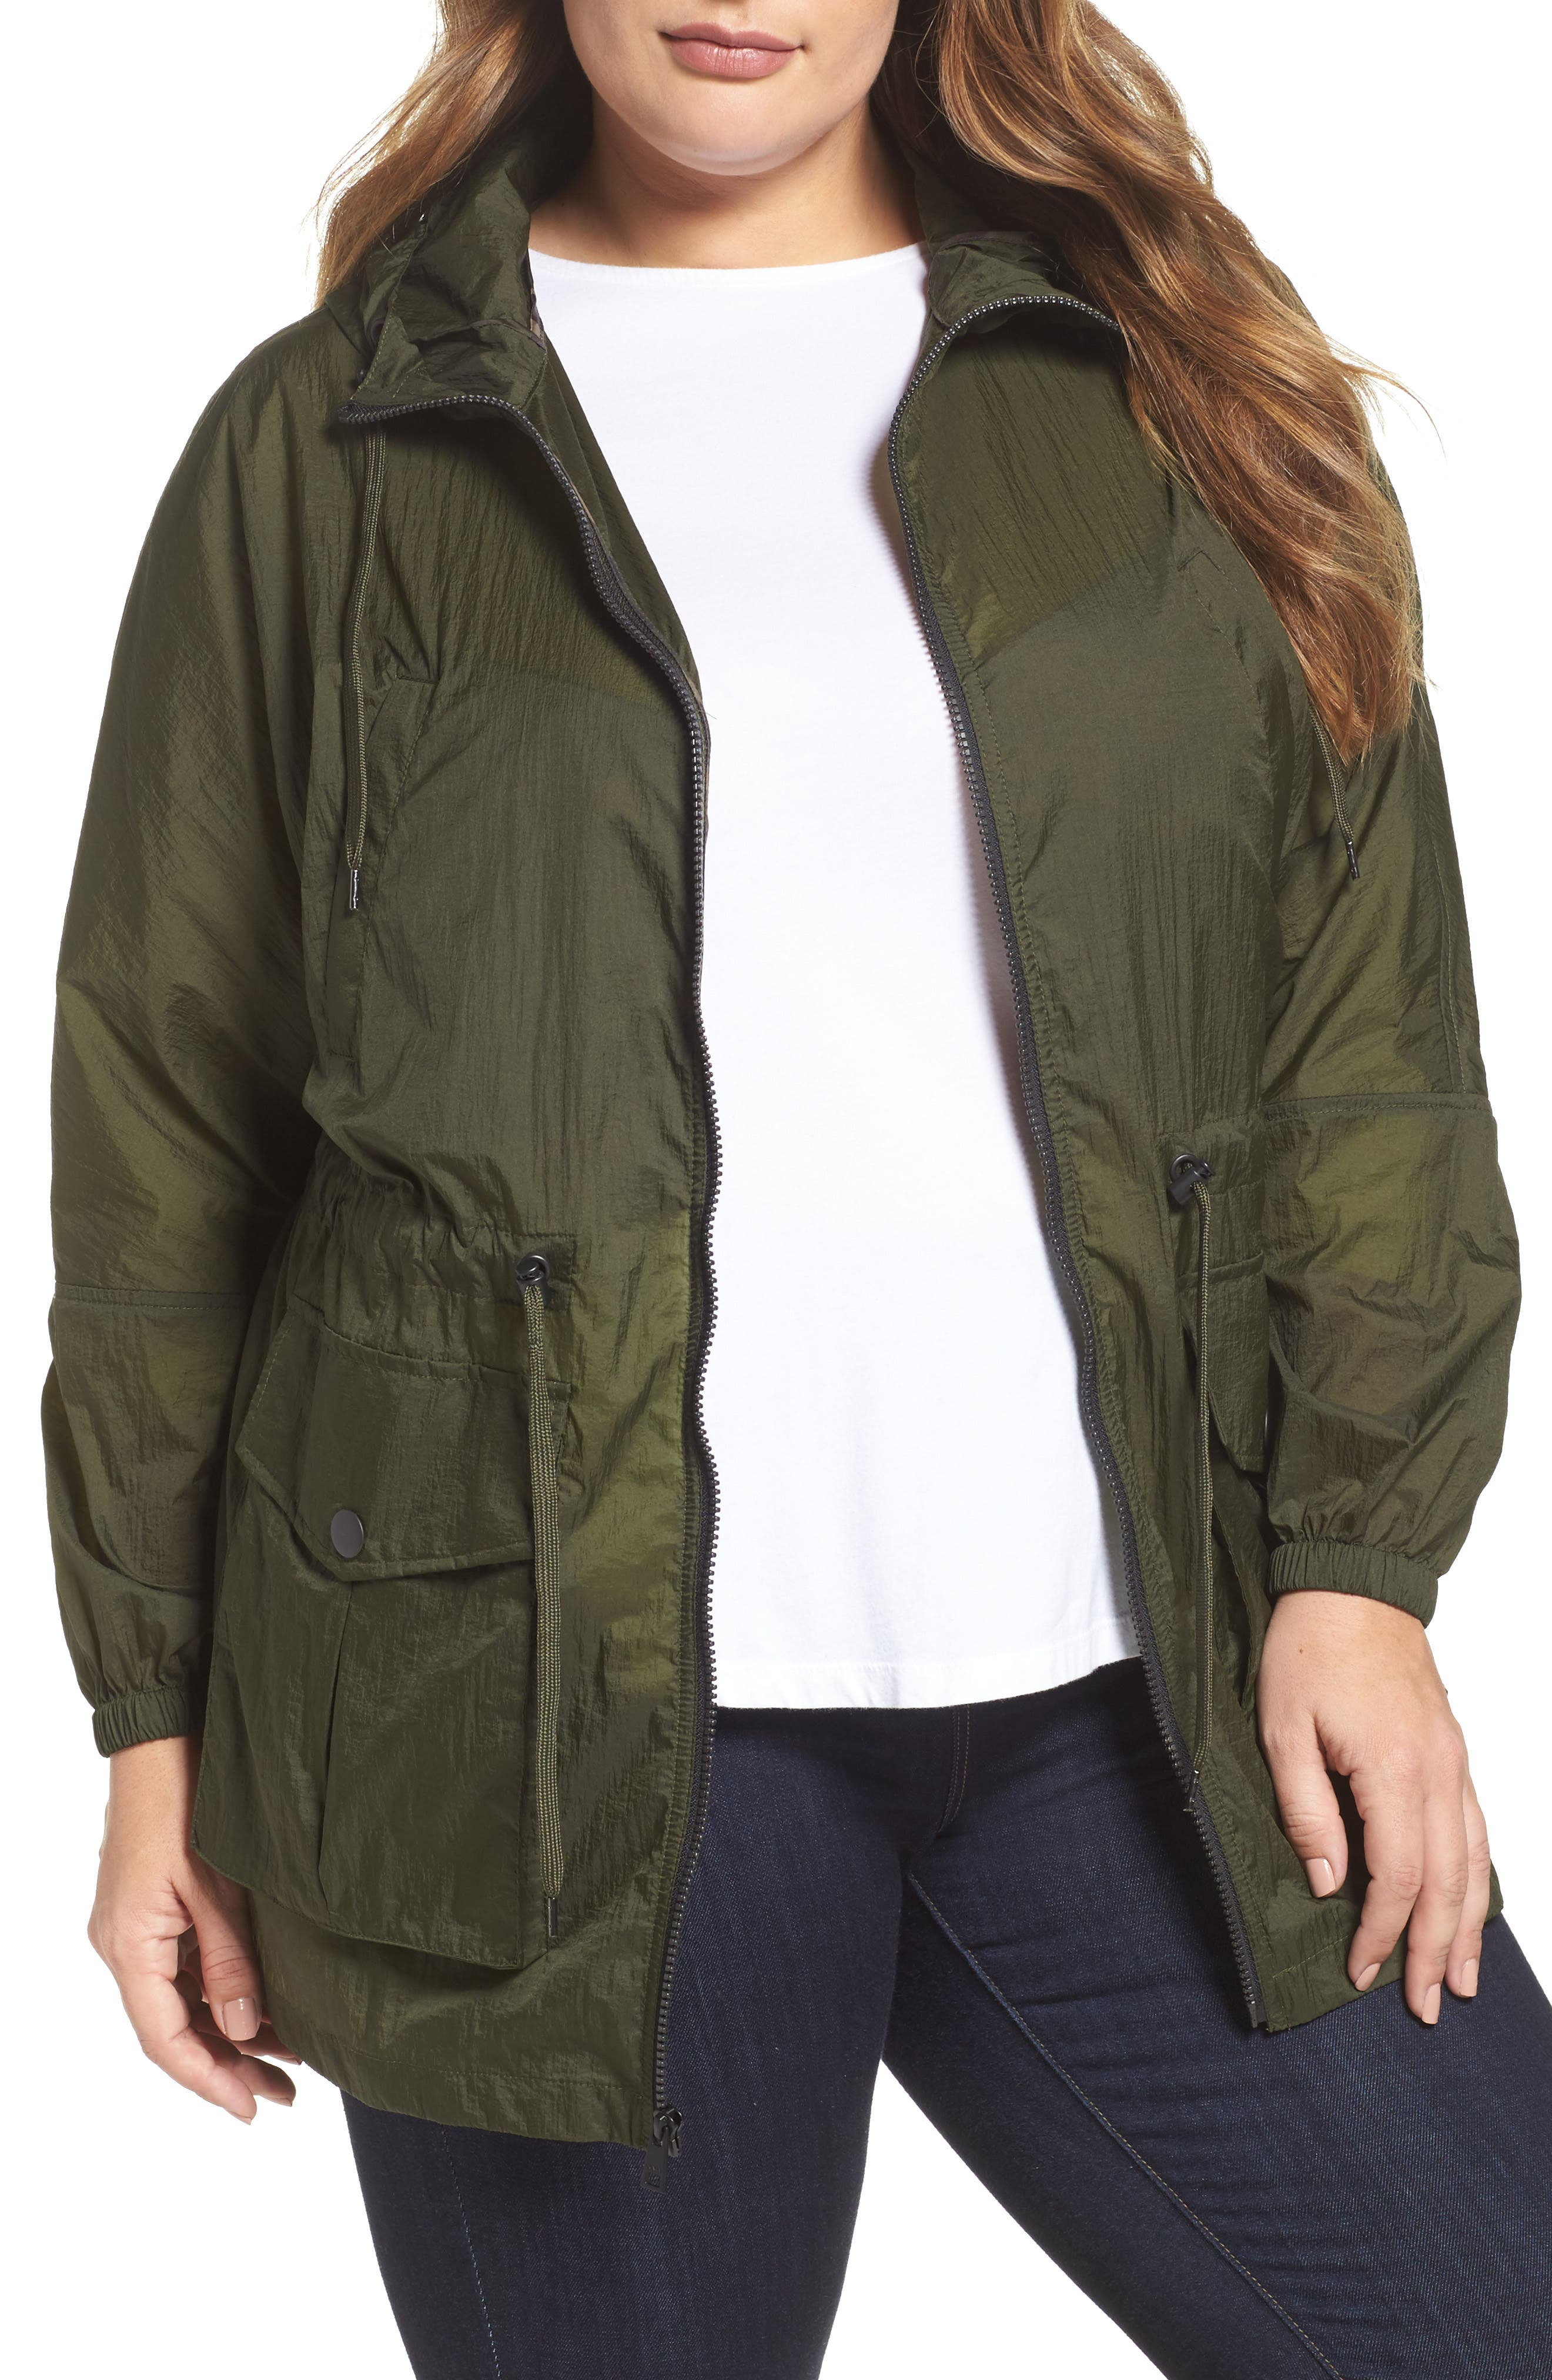 Hooded Windbreaker,                         Main,                         color, Army Green